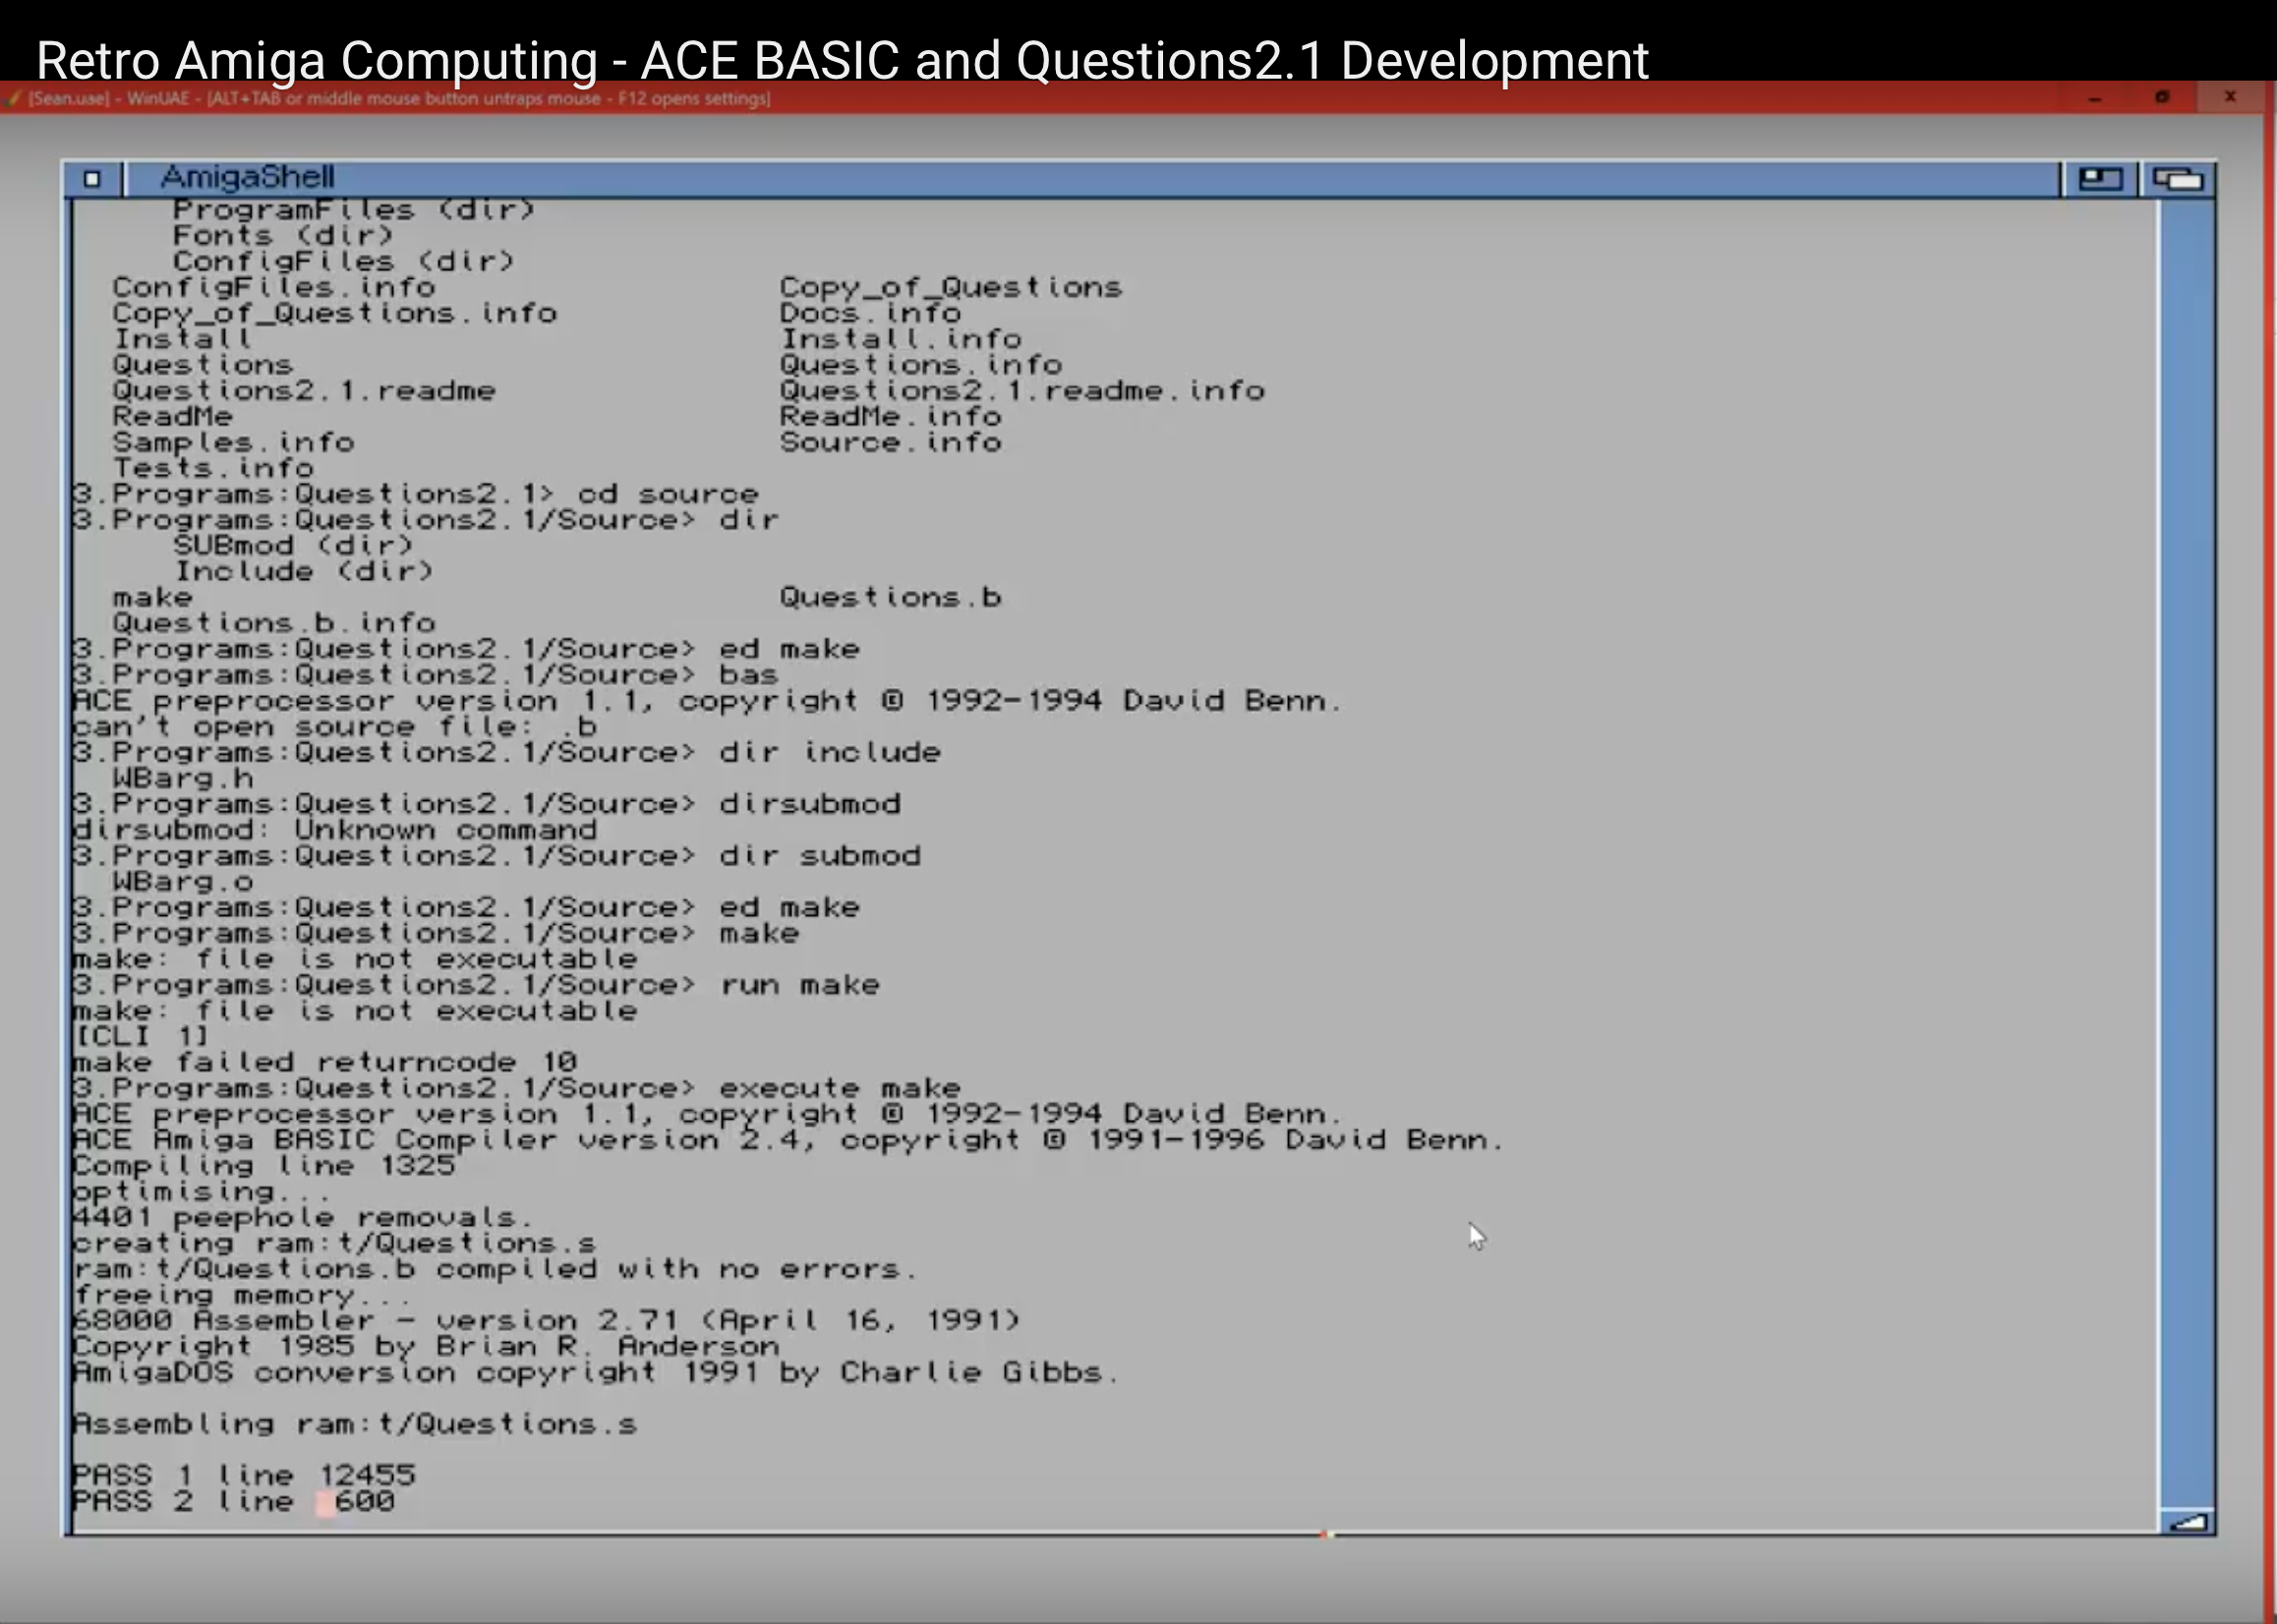 Retro Computing with ACE